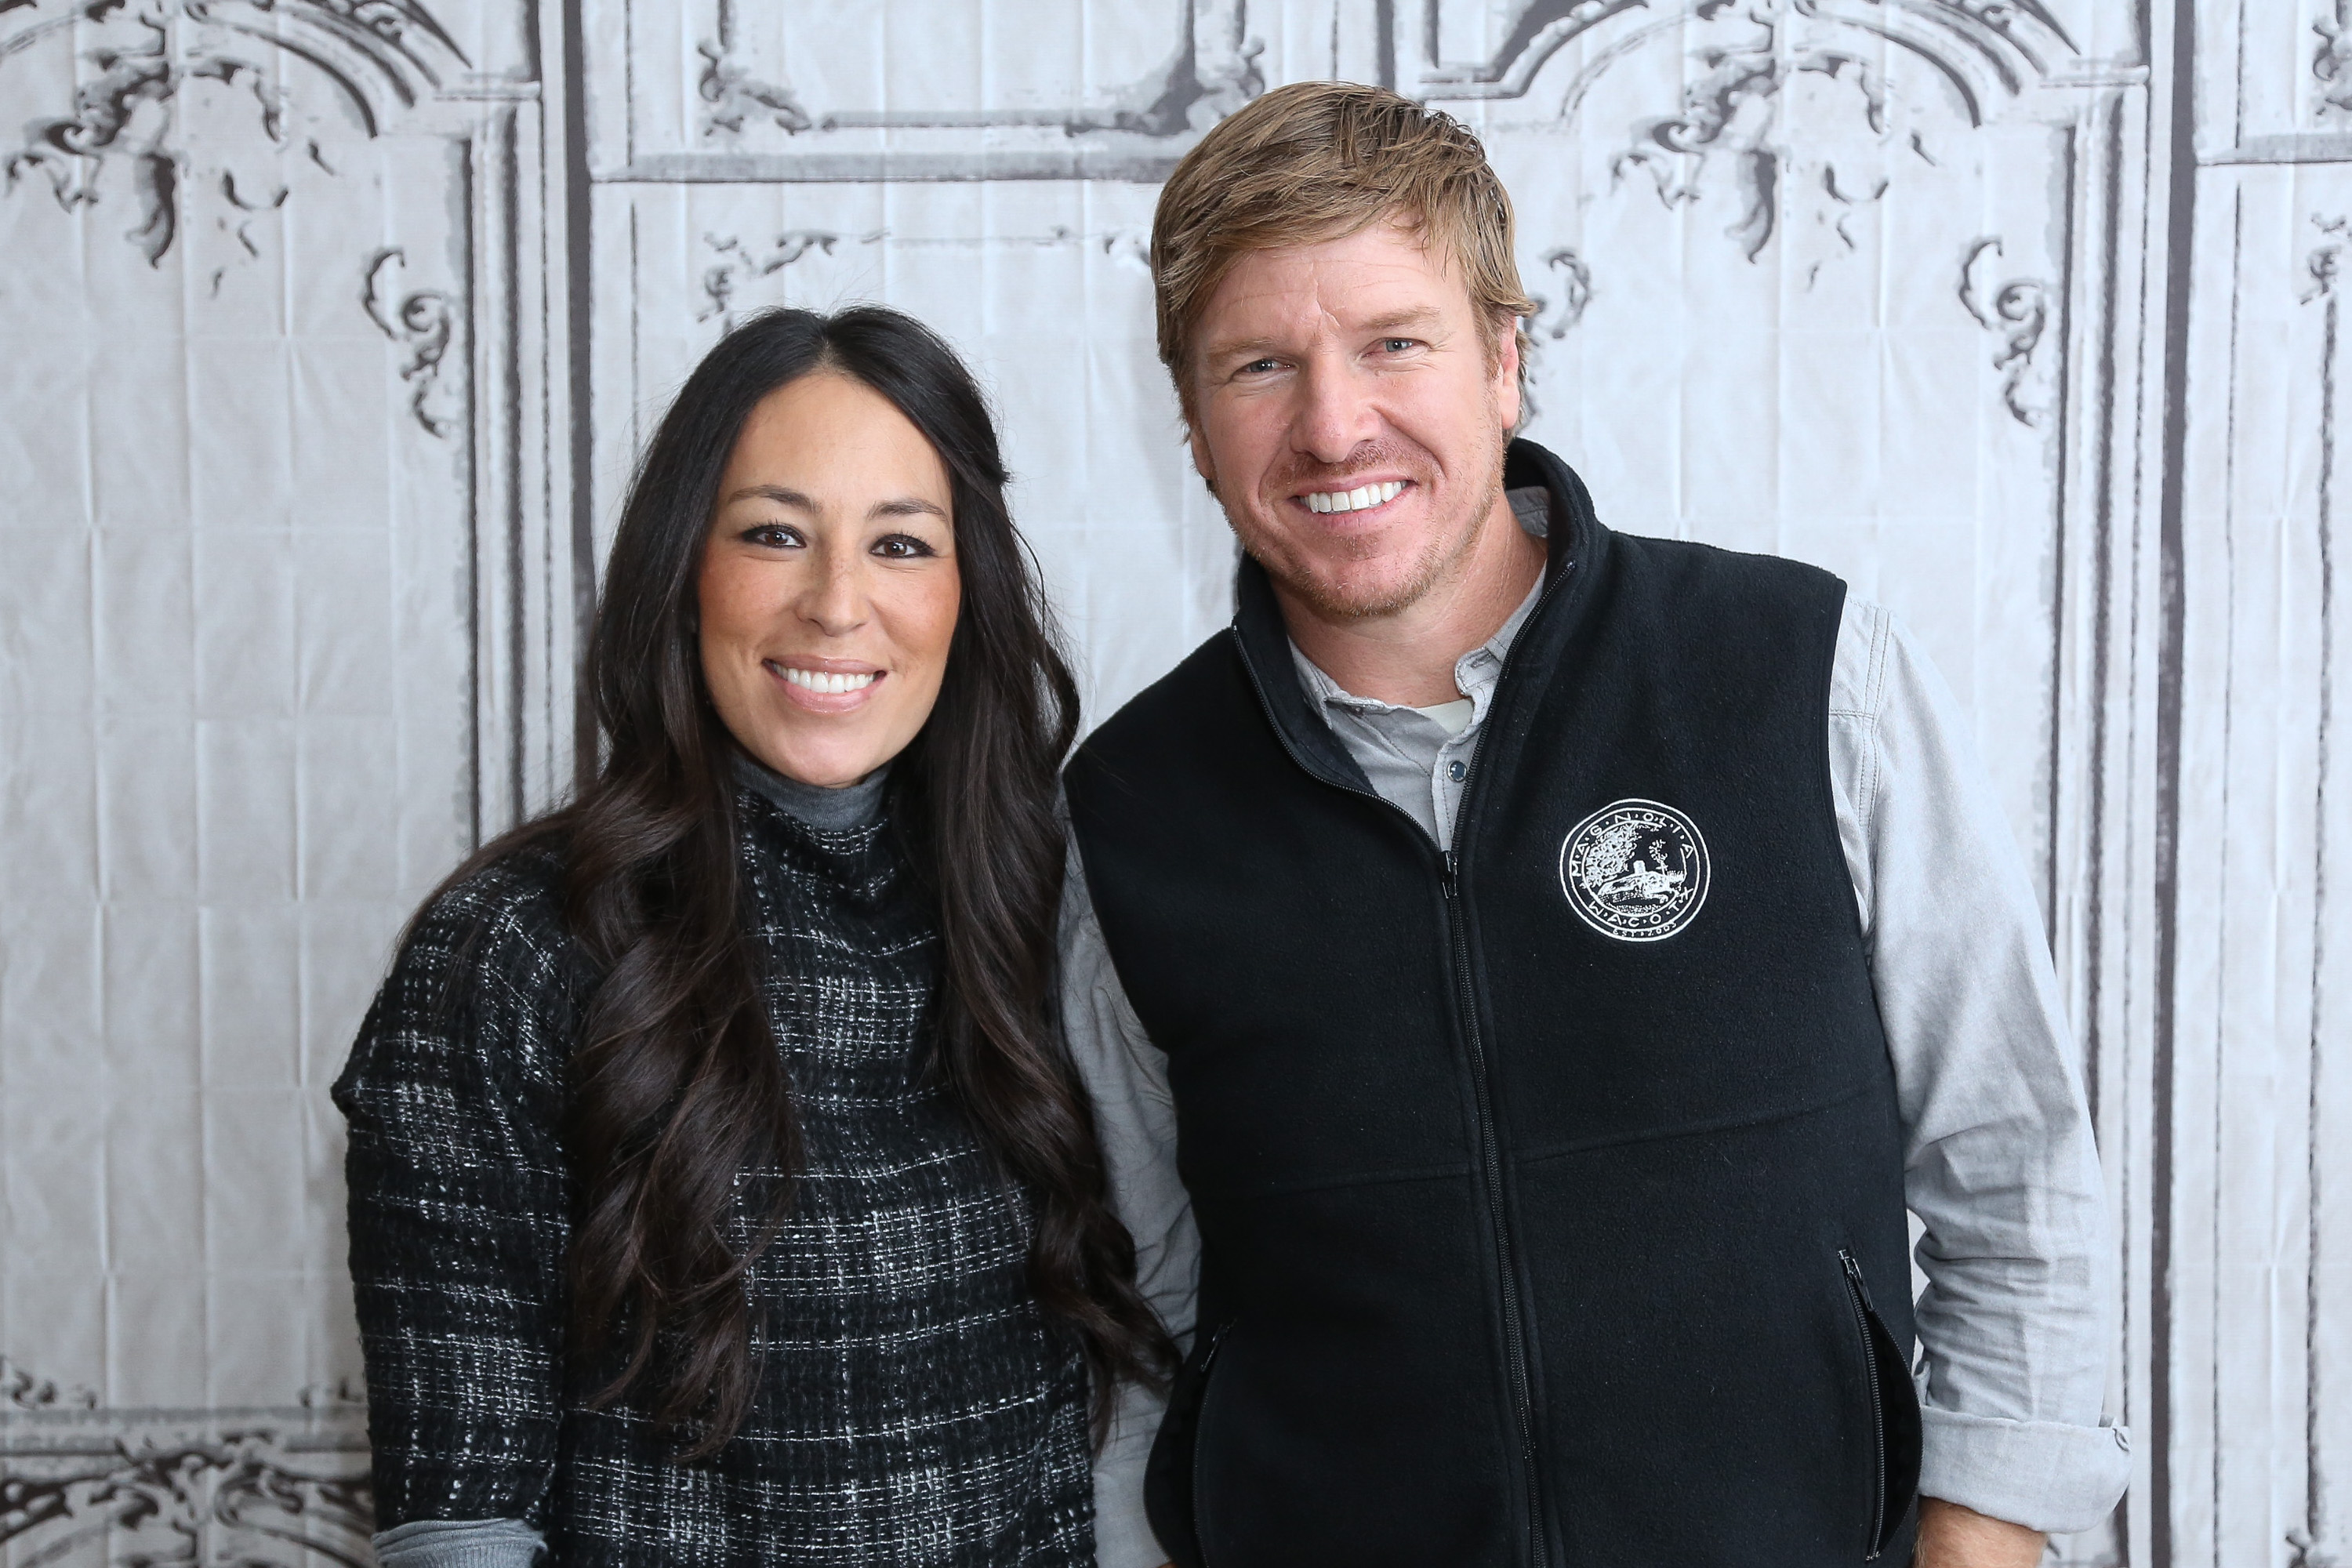 NEW YORK, NY - DECEMBER 08:  Real estate pros Chip Gaines (R) and Joanna Gaines attend AOL Build Presents:  Fixer Upper  at AOL Studios In New York on December 8, 2015 in New York City.  (Photo by Rob Kim/Getty Images)